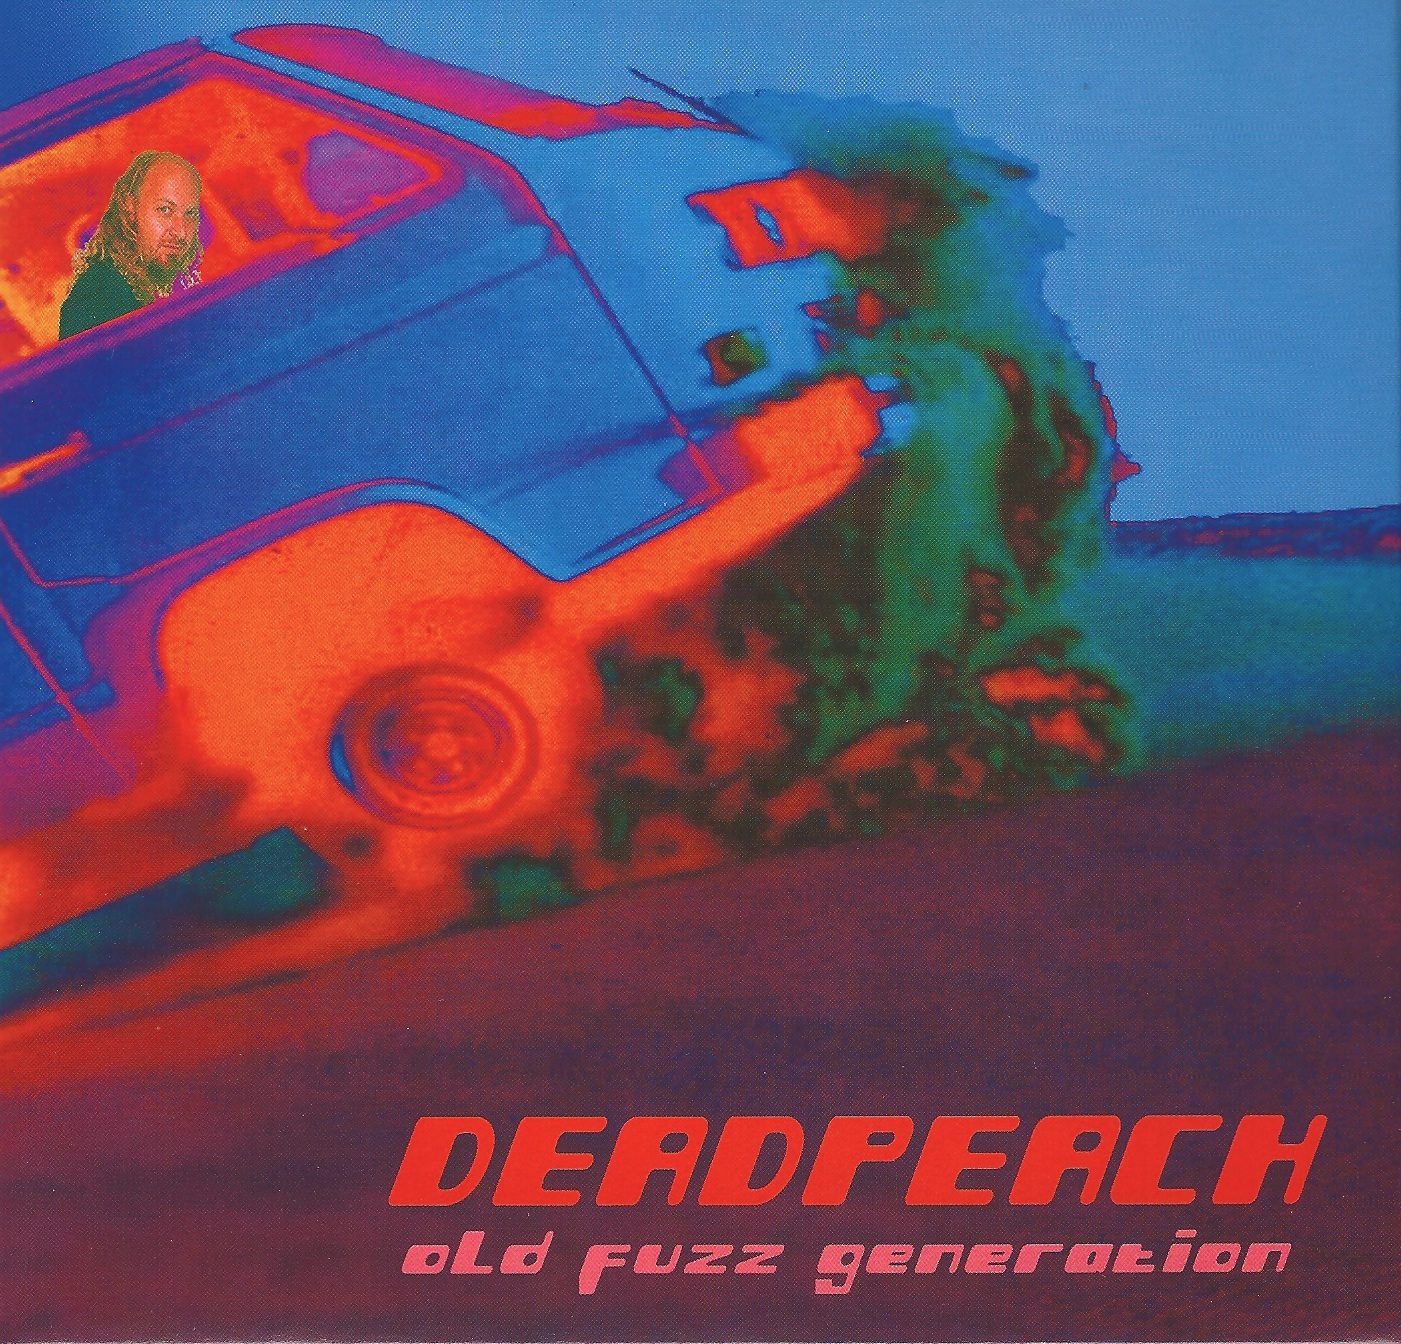 deadpeach old fuzz generation